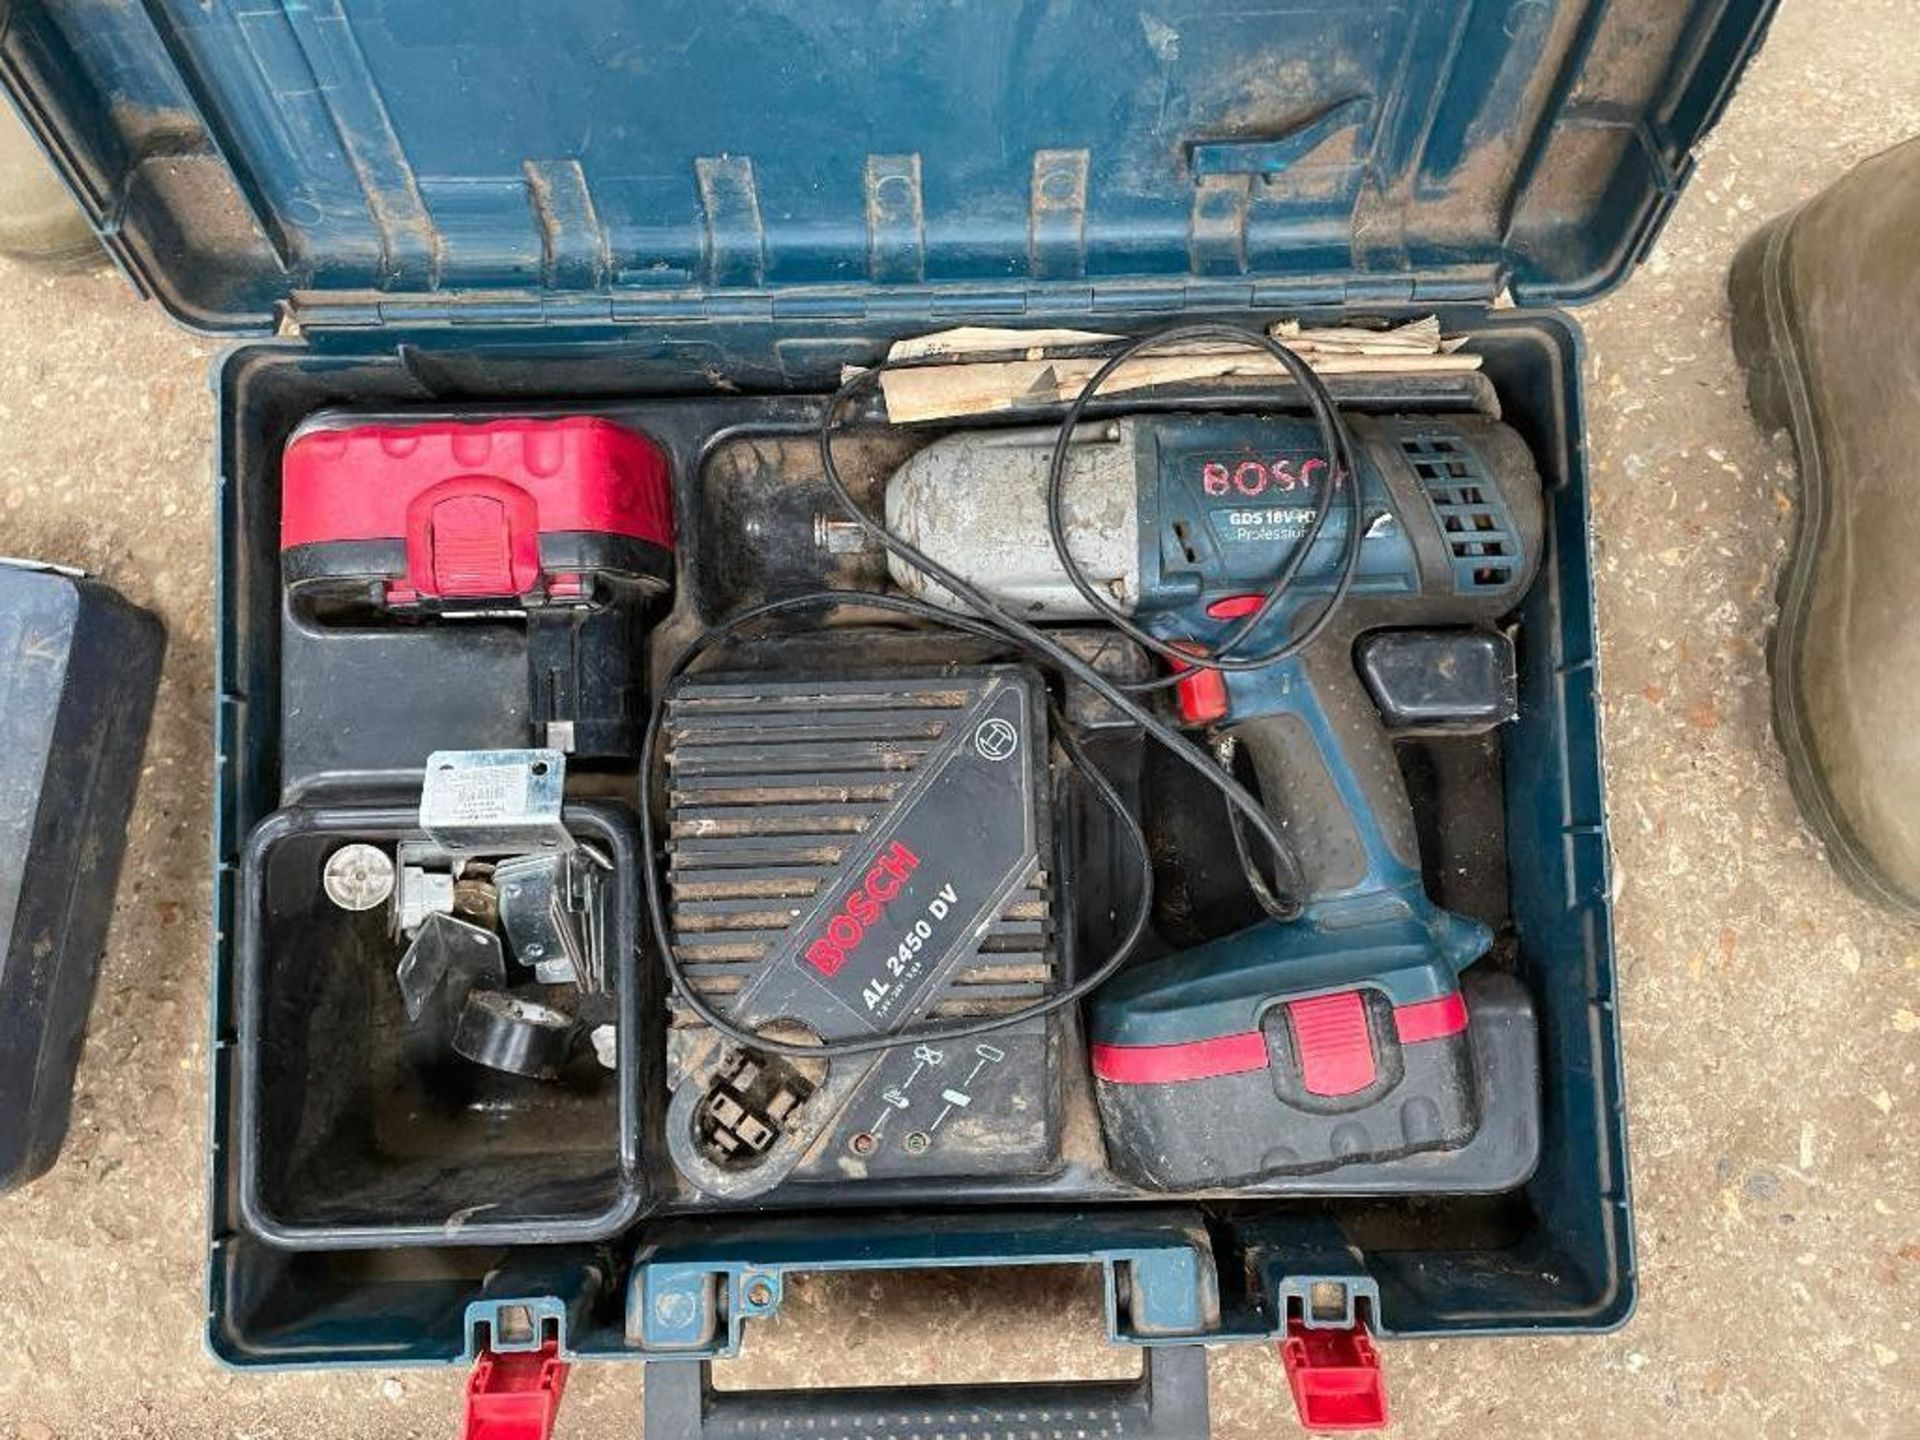 Bosch GDS 18V - HT impact wrench gun 3 batteries and charger. NB: Manual in Office - Image 2 of 2